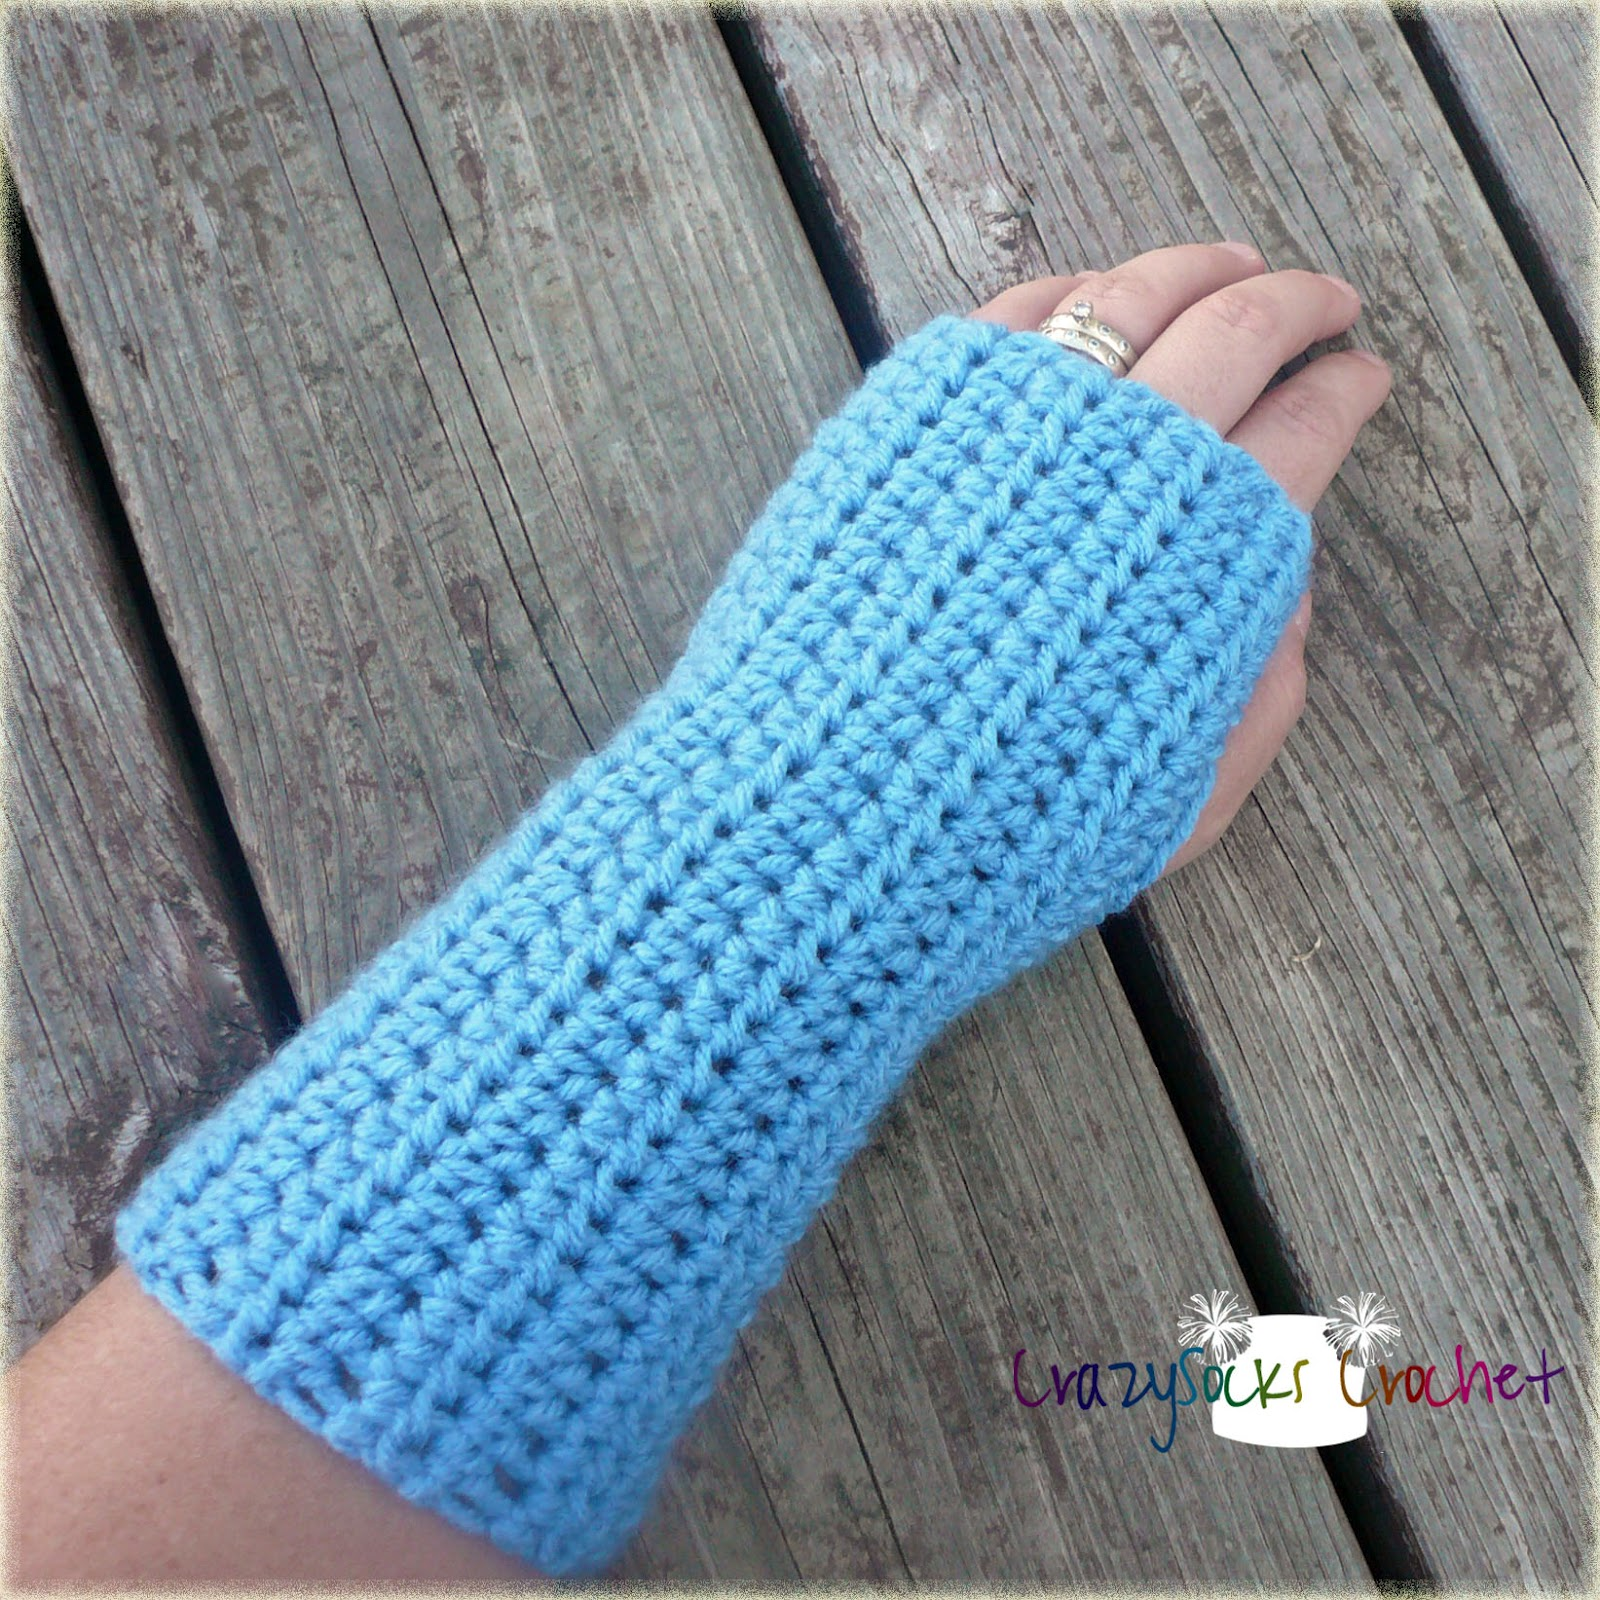 Free Crochet Patterns Hand Warmers : Danyel Pink Designs: CROCHET PATTERN - Wrist Warmers